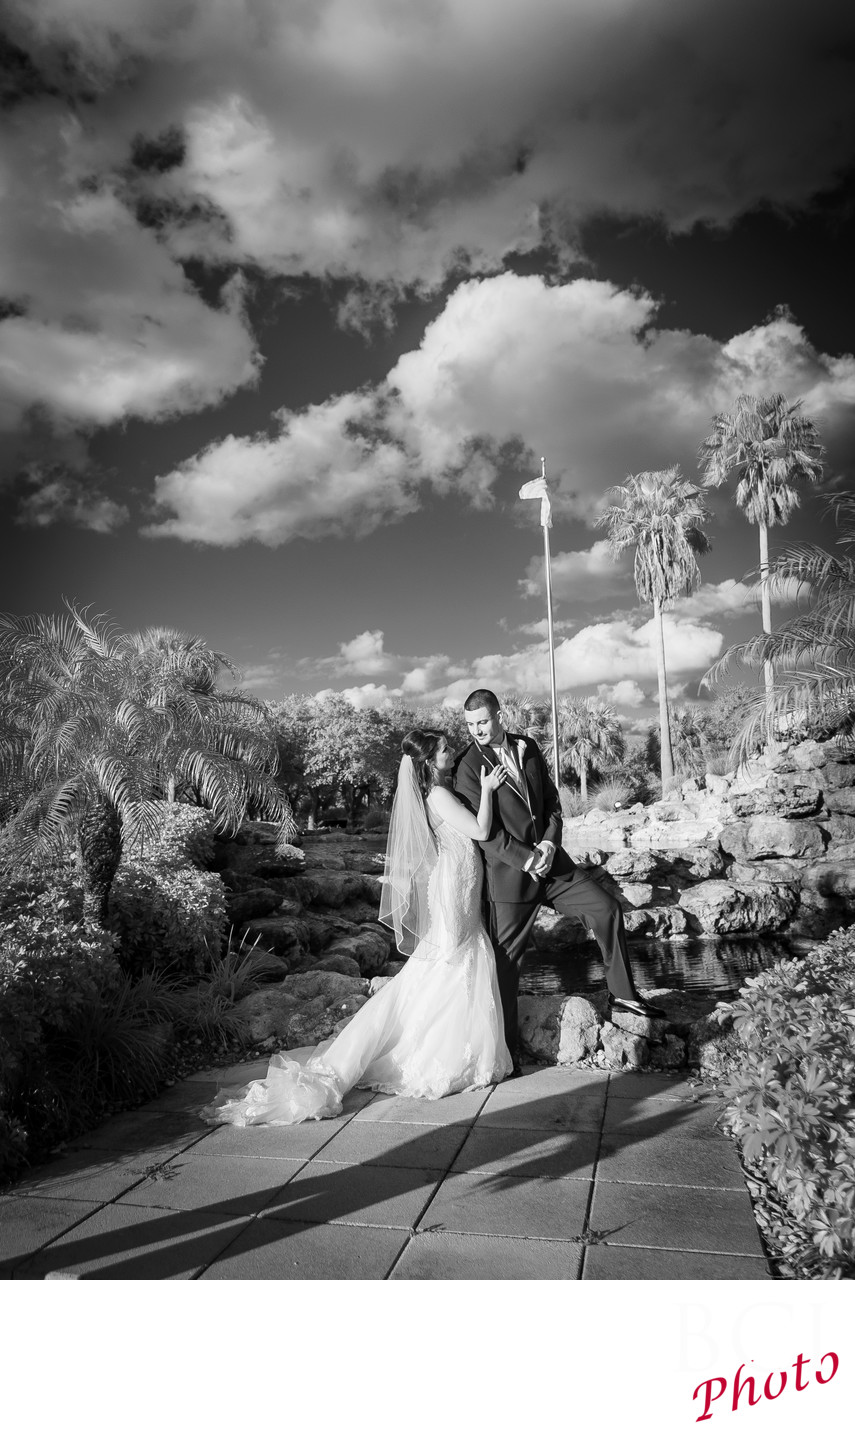 Cool Wedding Images at St Lucie Trail Golf Club